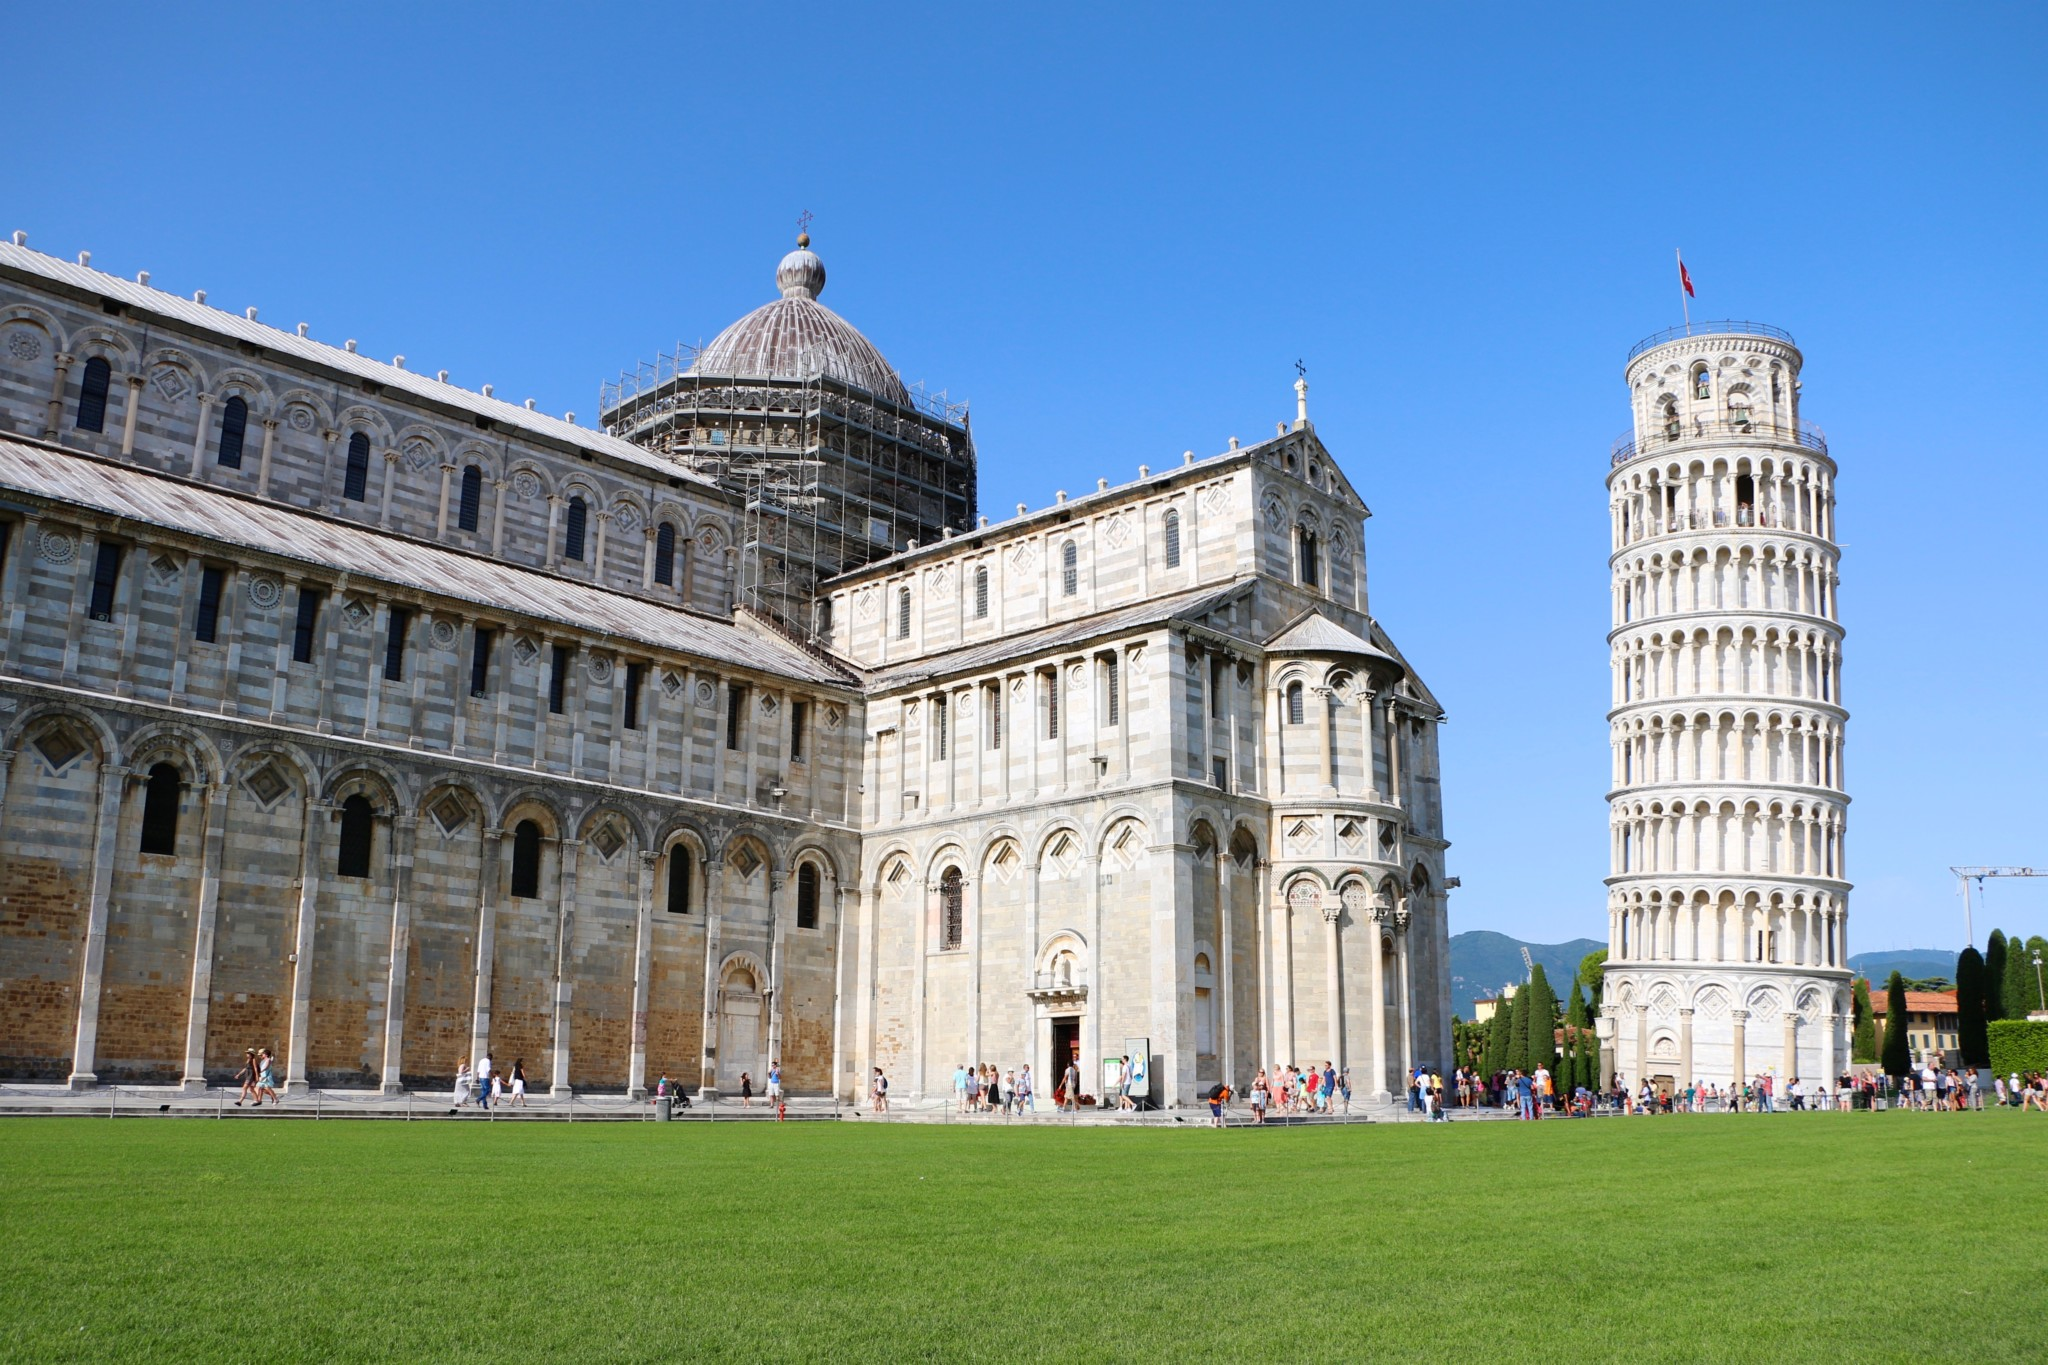 Square Miracles Pisa, Italy